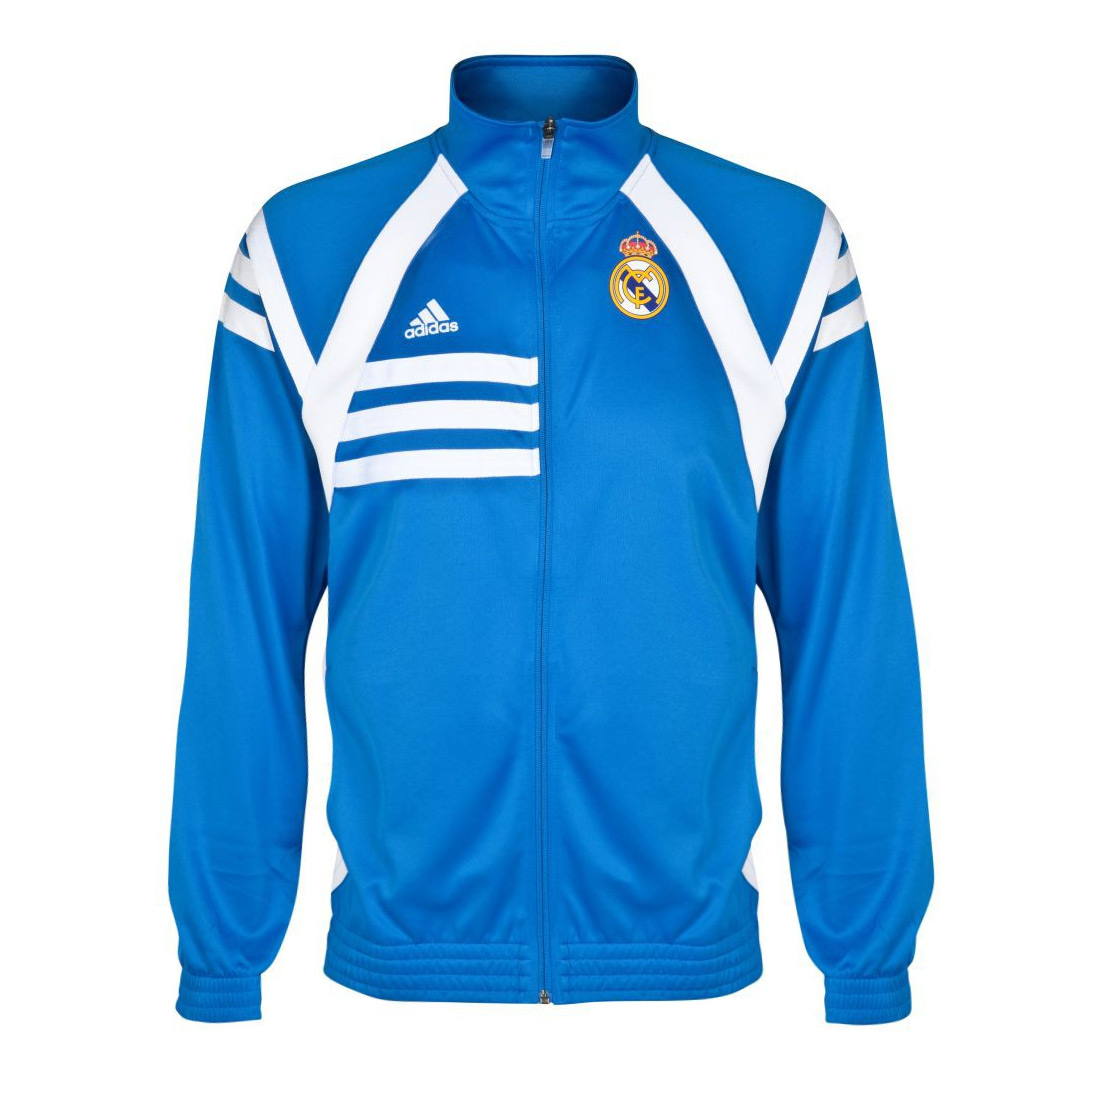 adidas real madrid tracktop track suit top jacket jersey. Black Bedroom Furniture Sets. Home Design Ideas